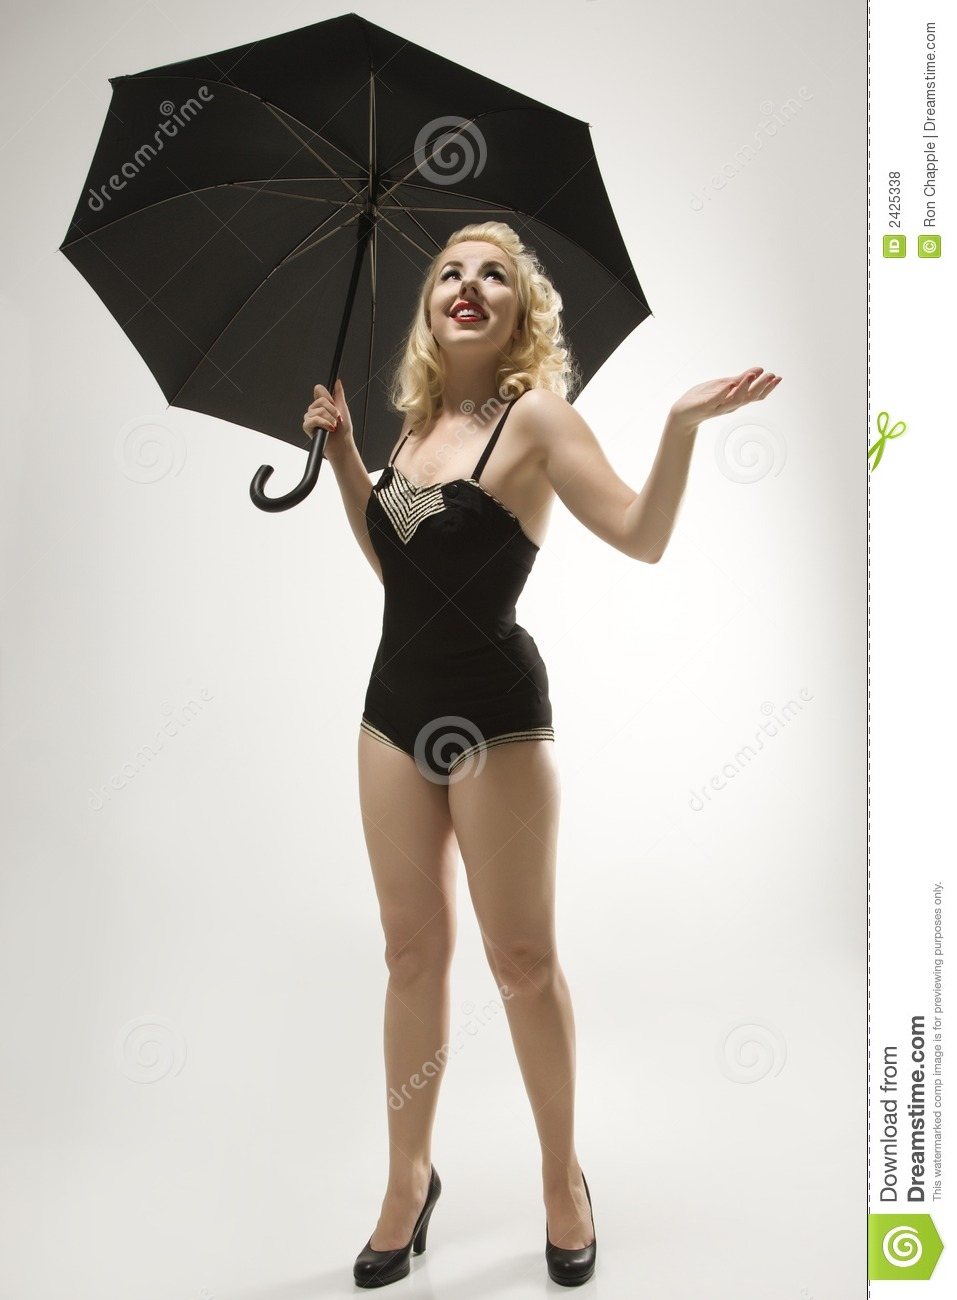 Woman With Umbrella Stock Photo Image Of Caucasian Studio 2425338